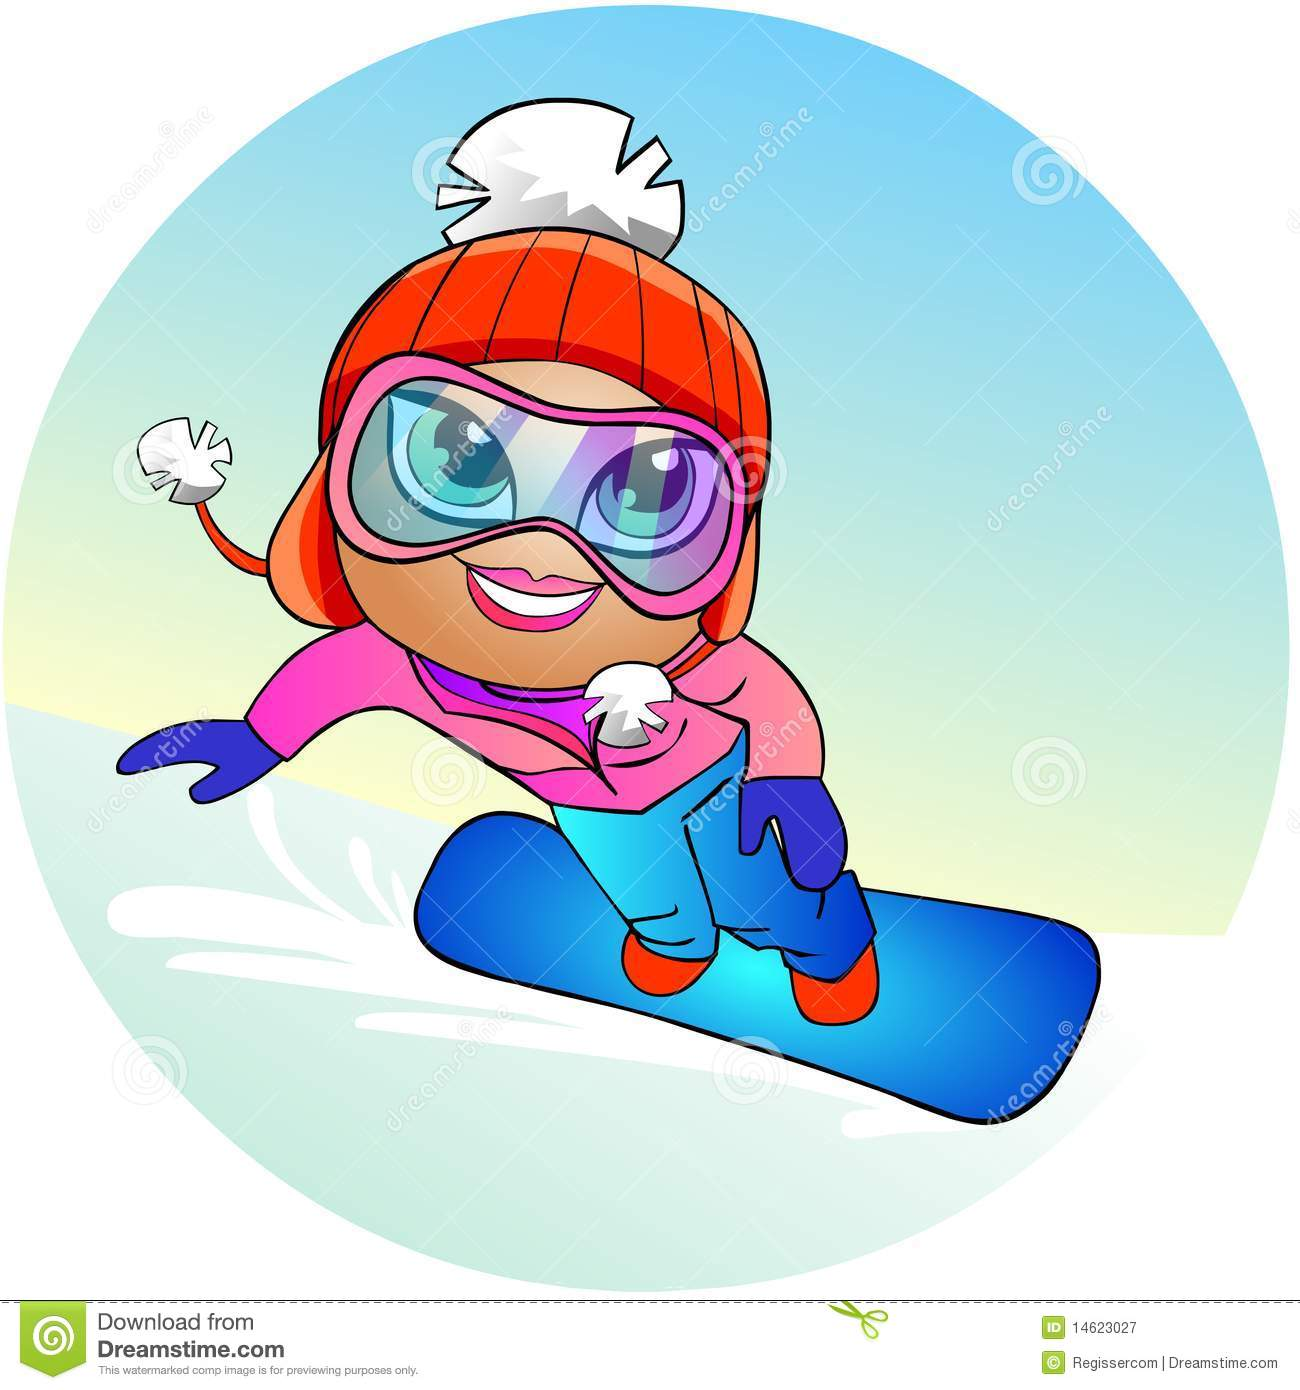 Snowboarder Girl Royalty Free Stock Photography - Image: 14623027 Happy Child Clipart